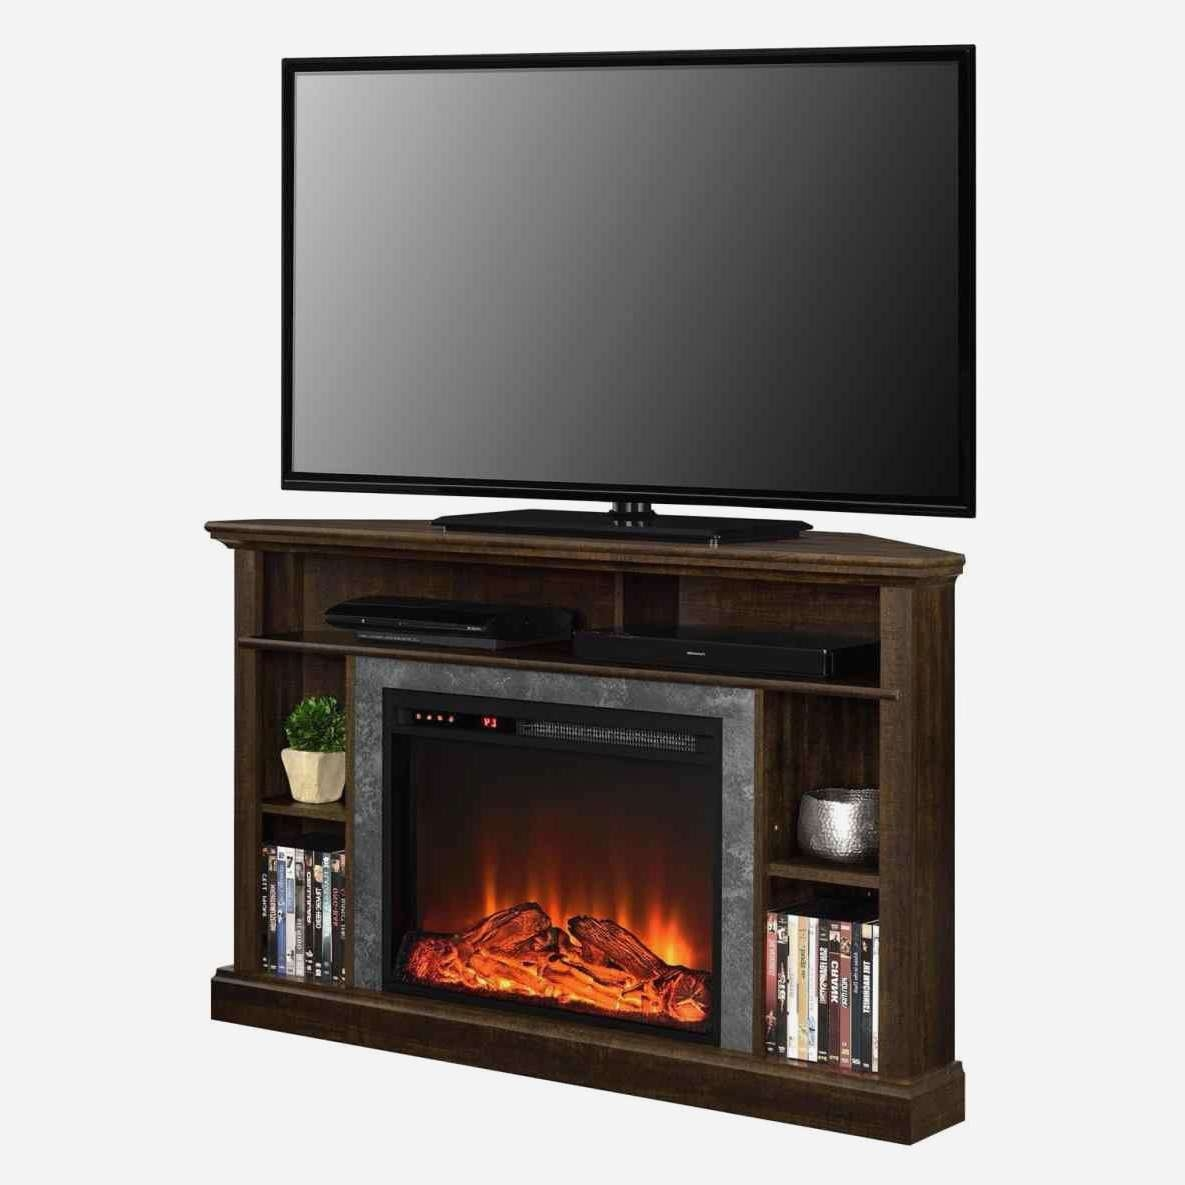 Fireplace : Fresh Fireplace Tv Stands Costco Artistic Color Decor In Classy Tv Stands (View 19 of 20)